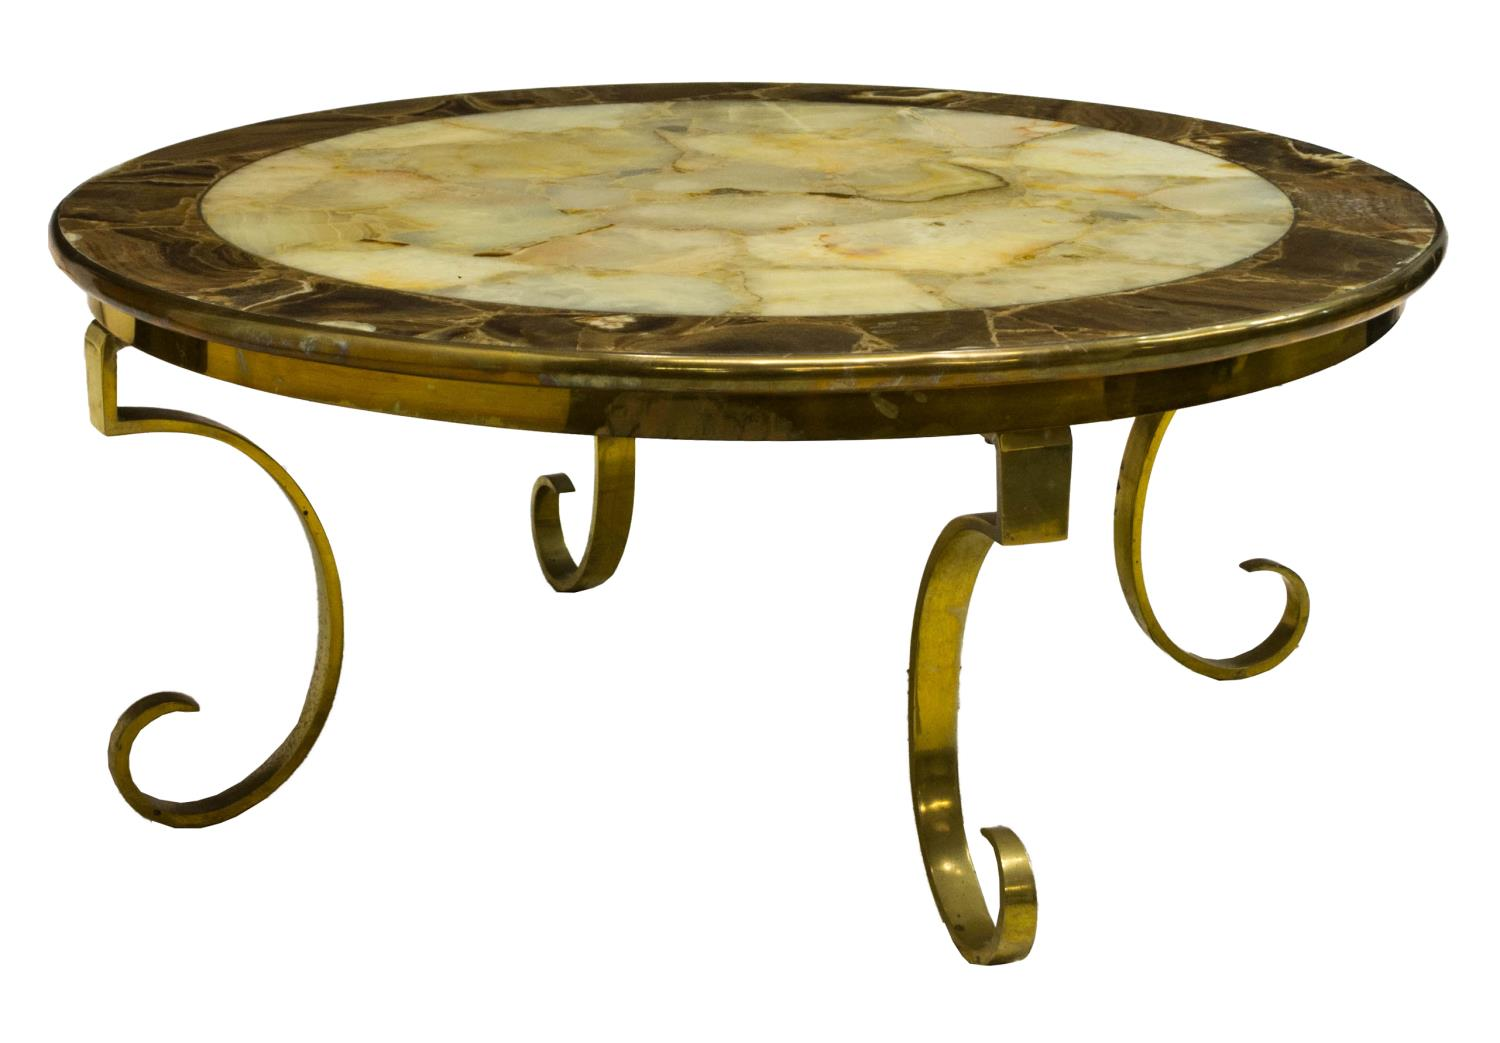 ONYX AND BRASS CIRCULAR COFFEE TABLE, 20TH C